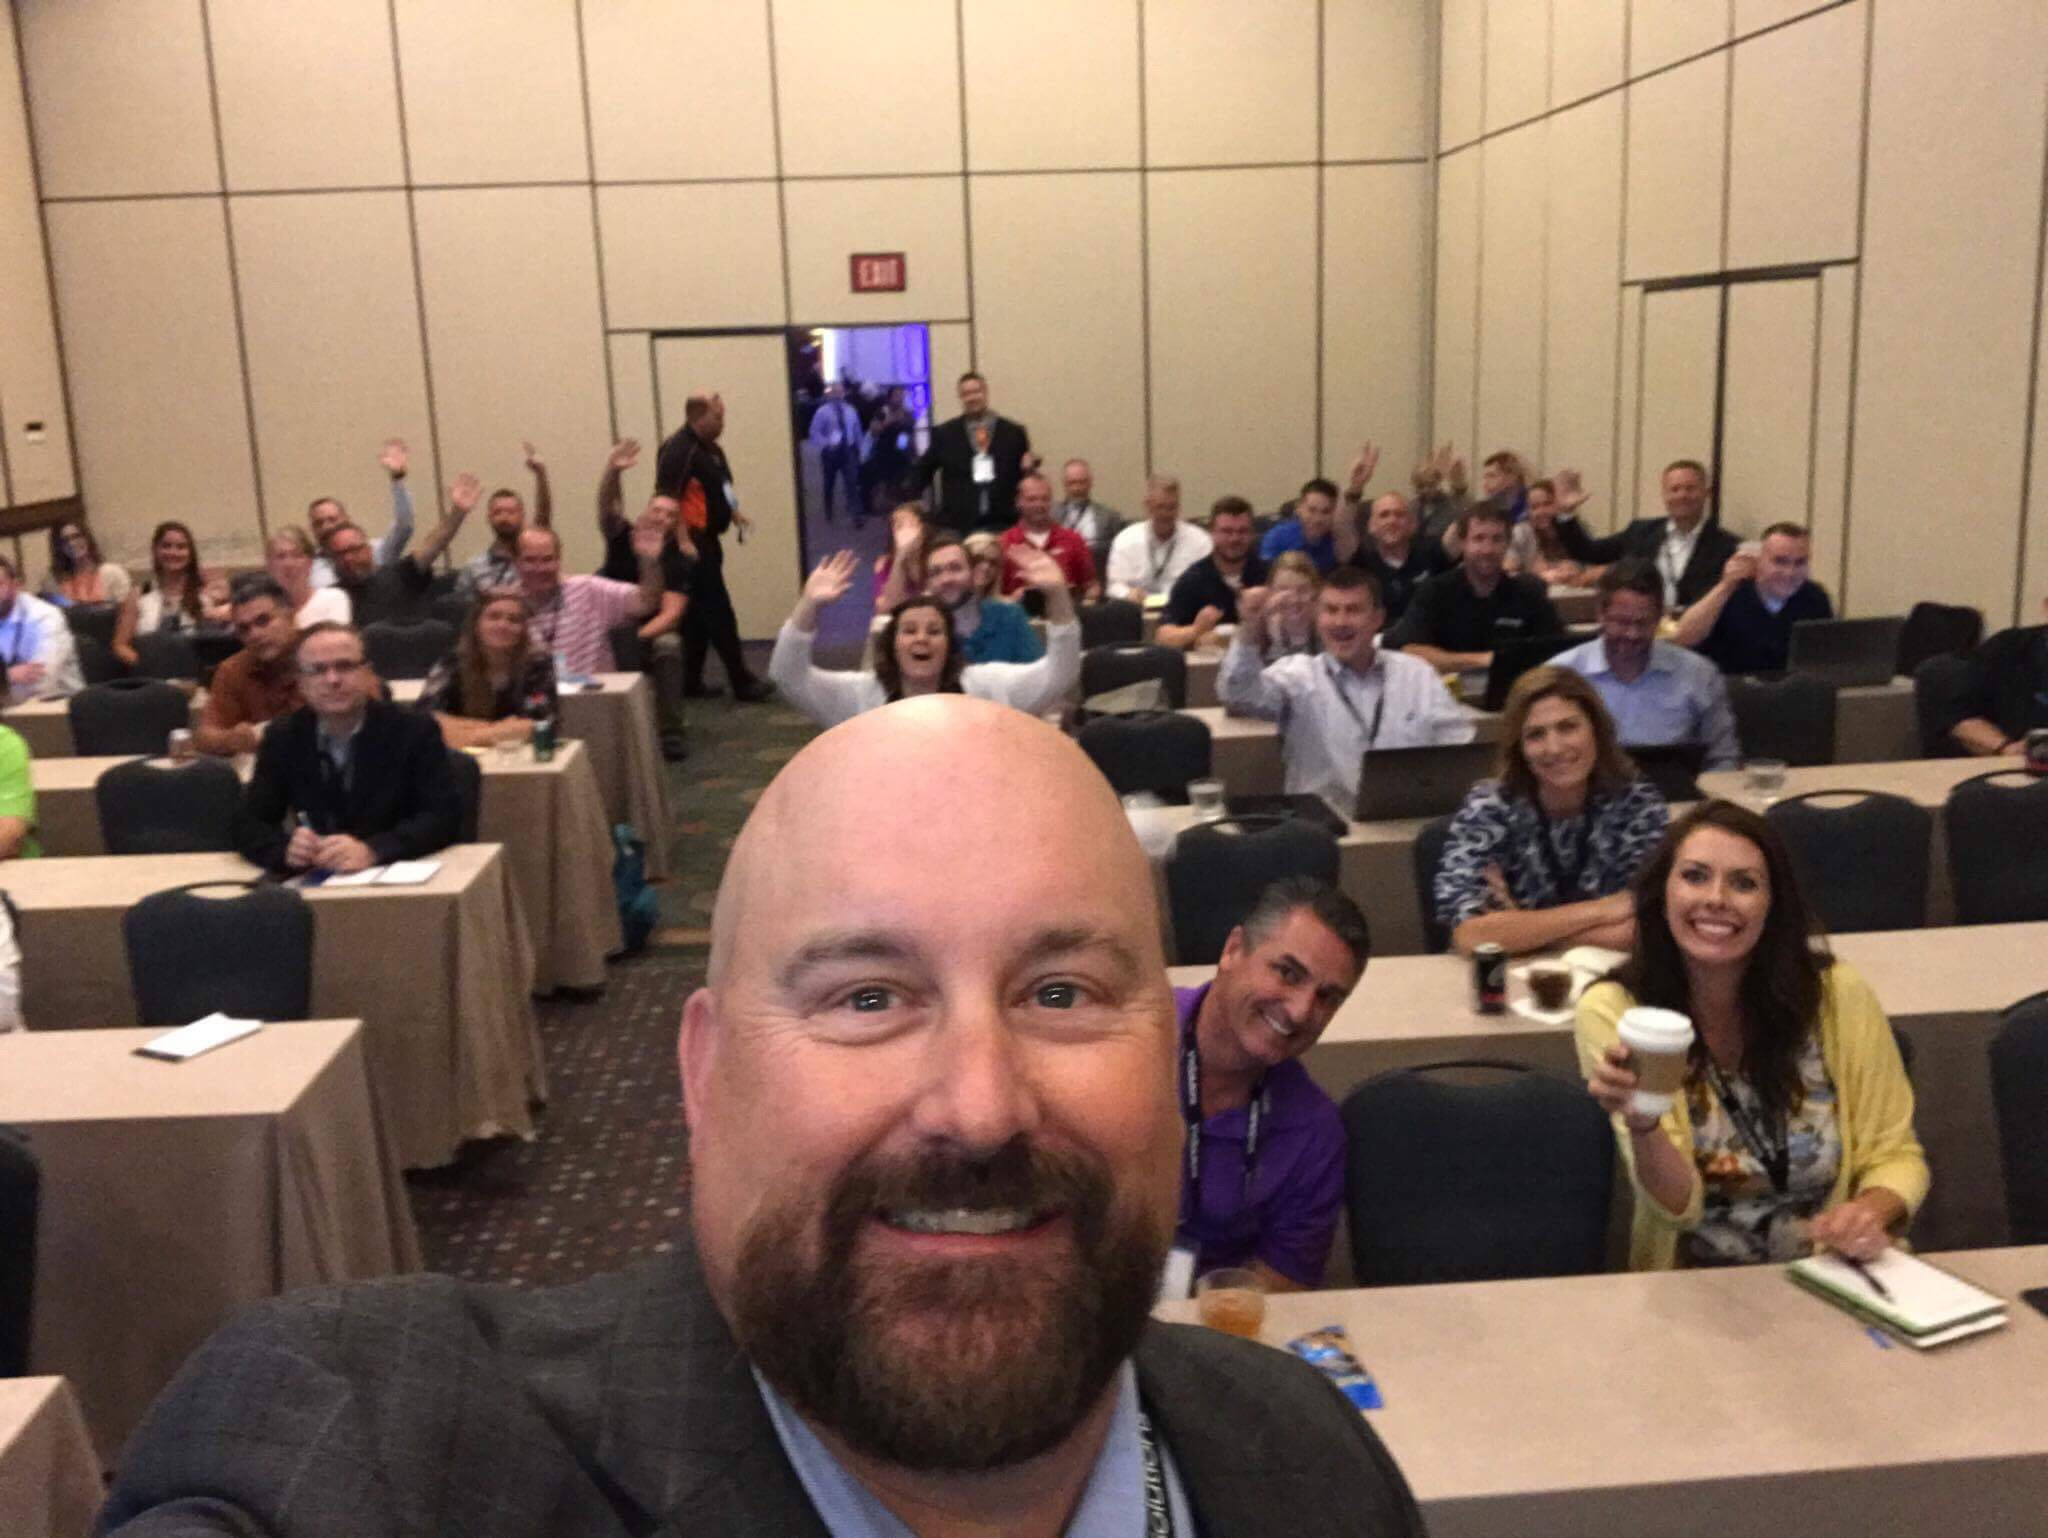 Performance Manager Scott Reagan and his breakout session attendees take a break from learning how to become their dealership's digital rock star to pose for a selfie.